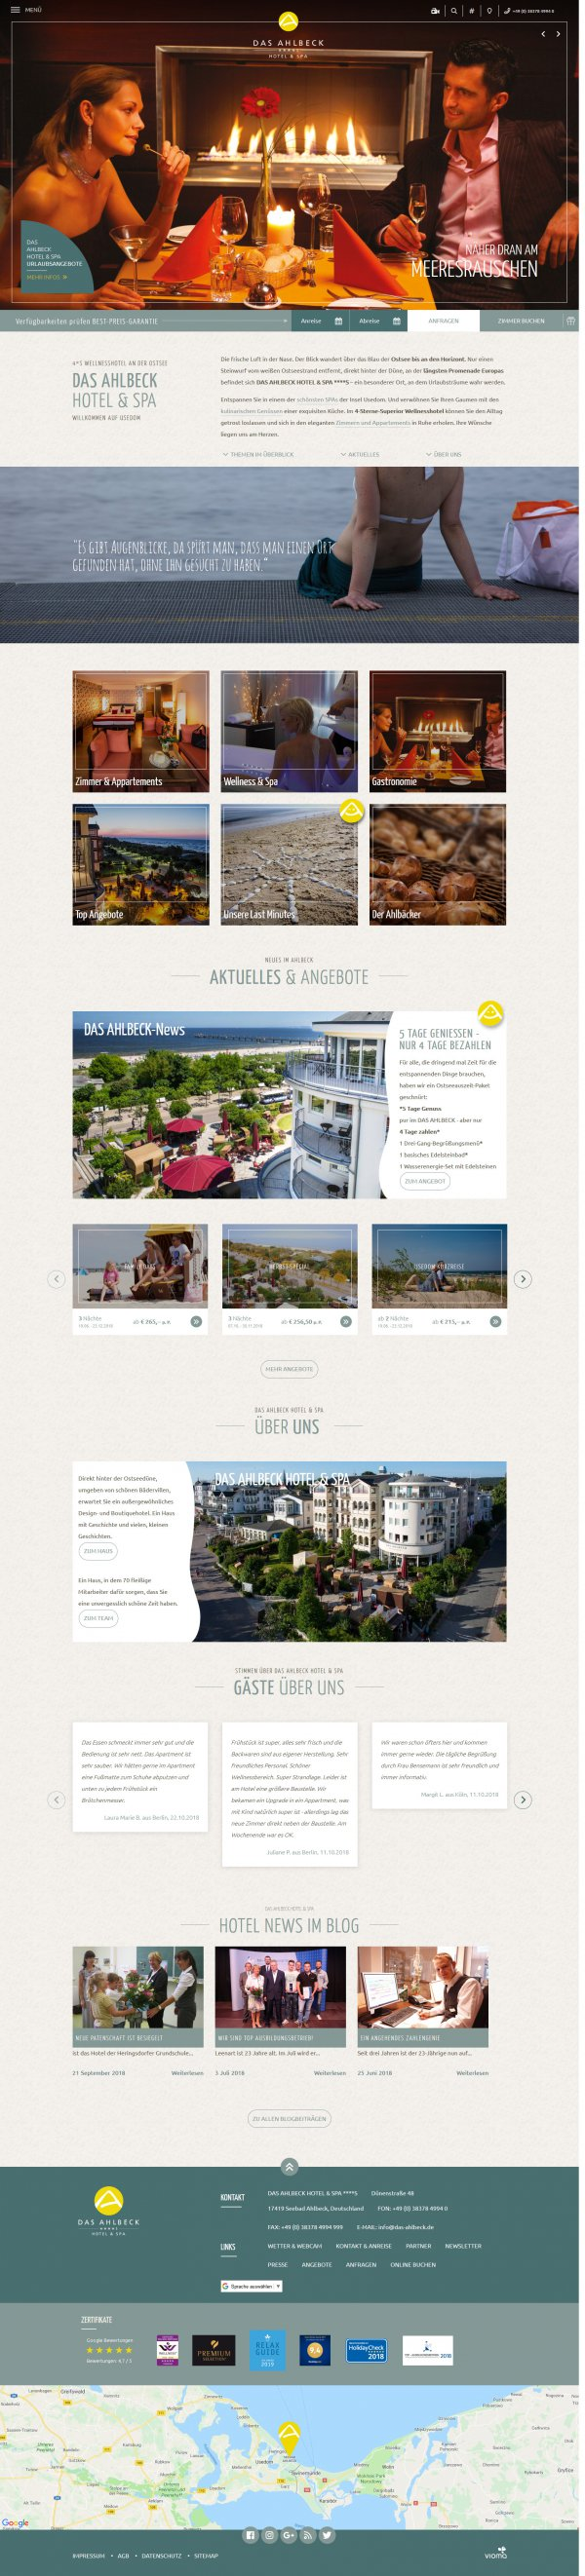 Website DAS AHLBECK HOTEL & SPA